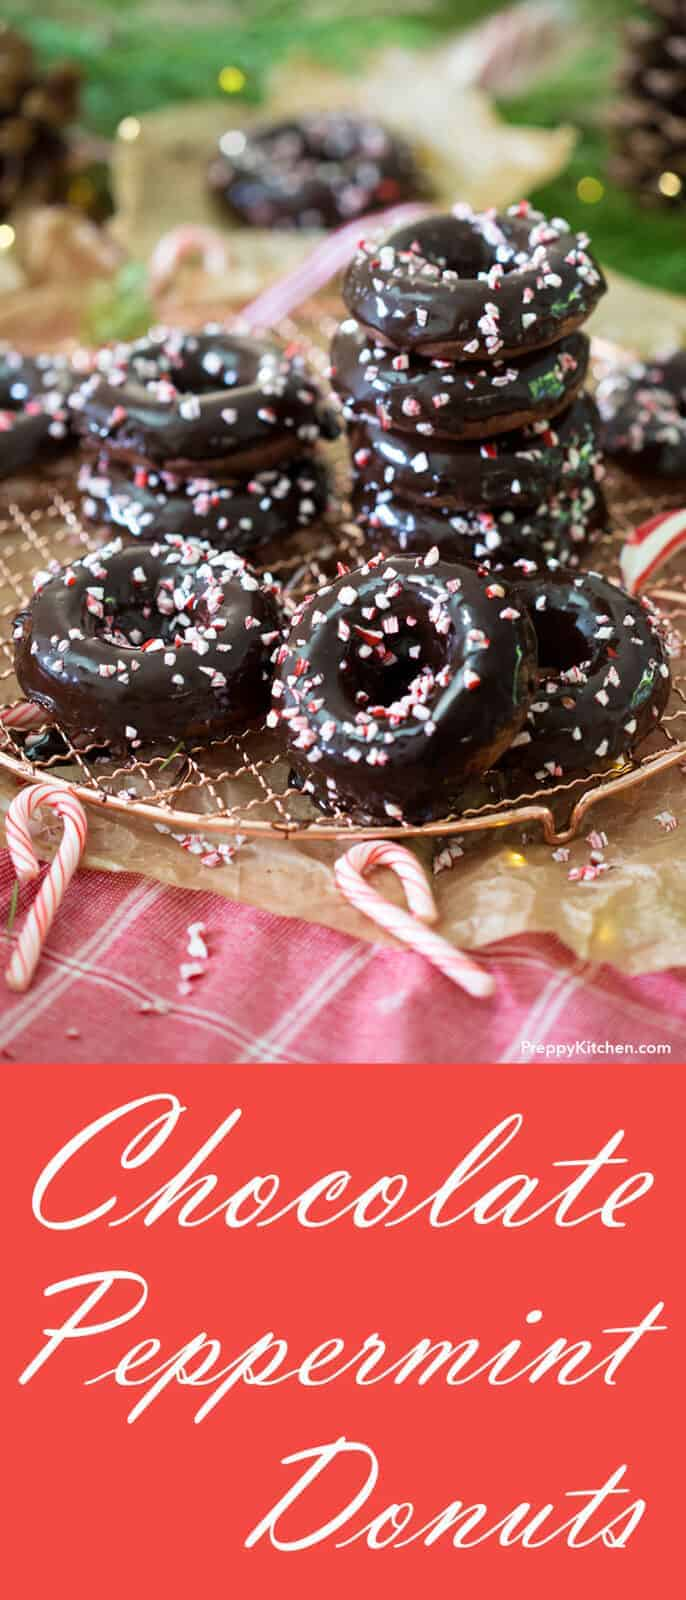 These moist and rich chocolate donuts are kissed with mint and covered in the most decadent ganache. These baked donuts are an easy one bowl treat you can whip up in no time flat.